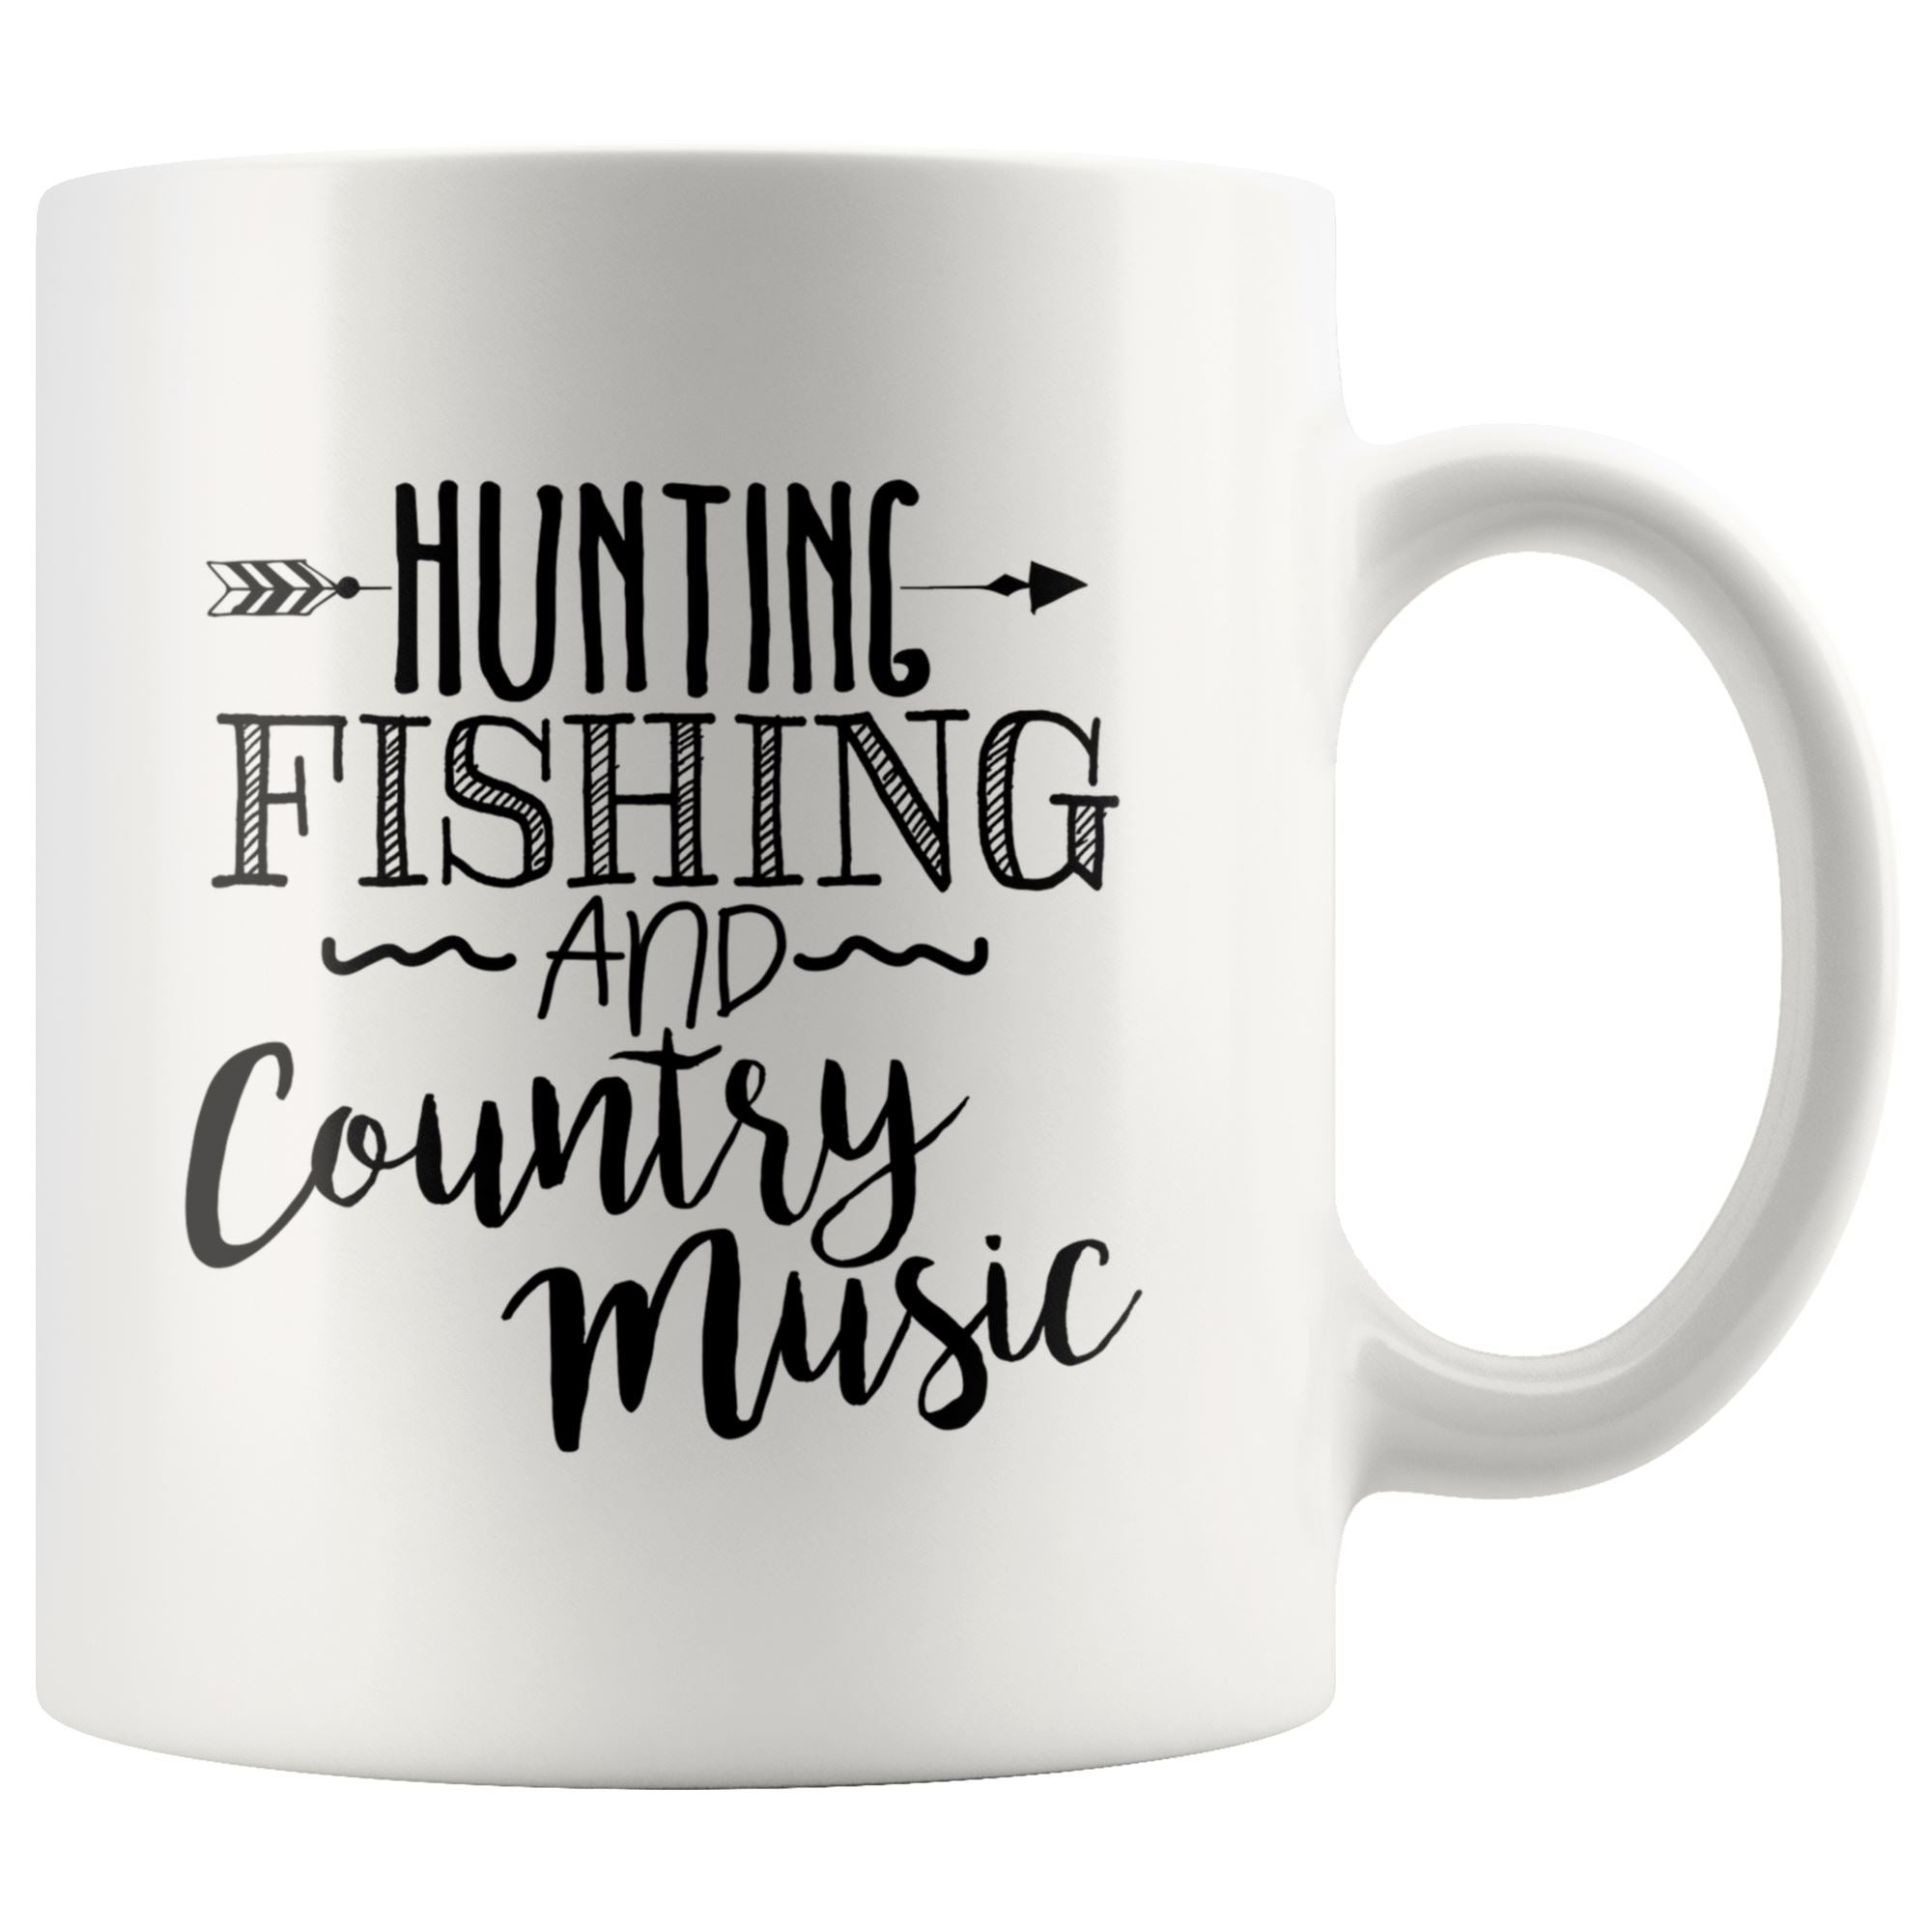 Hunting Fishing and Country Music Drinkware teelaunch 11oz Mug